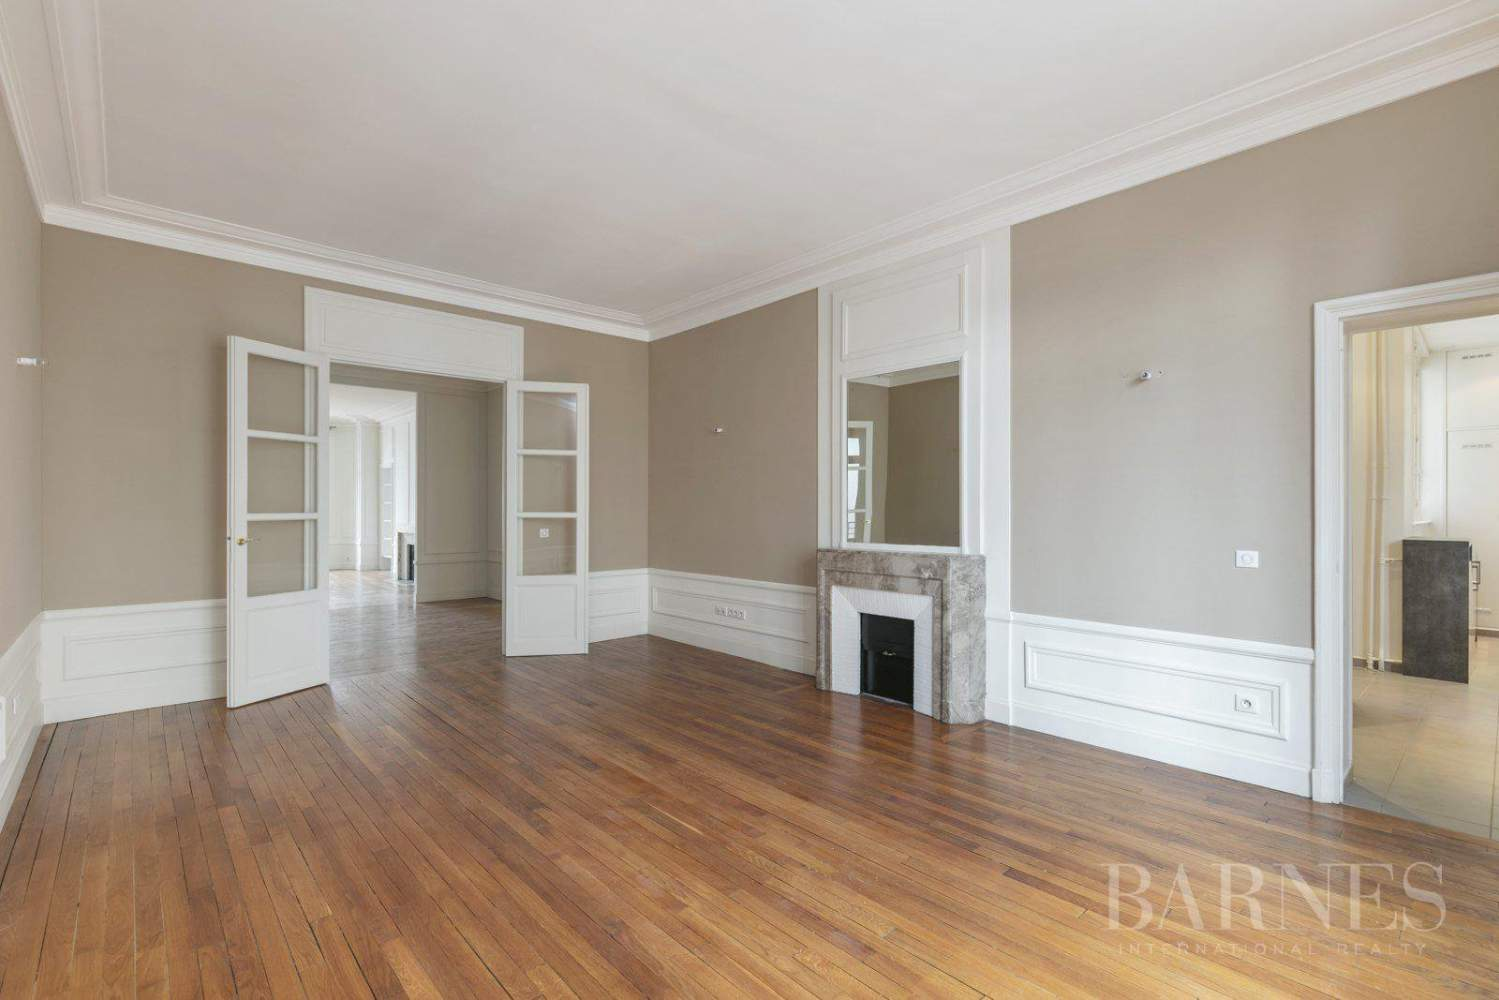 EXCLUSIVE - 8-ROOM APARTMENT FOR SALE - RENOVATED 1930s BUILDING - NEUILLY/PASTEUR picture 2